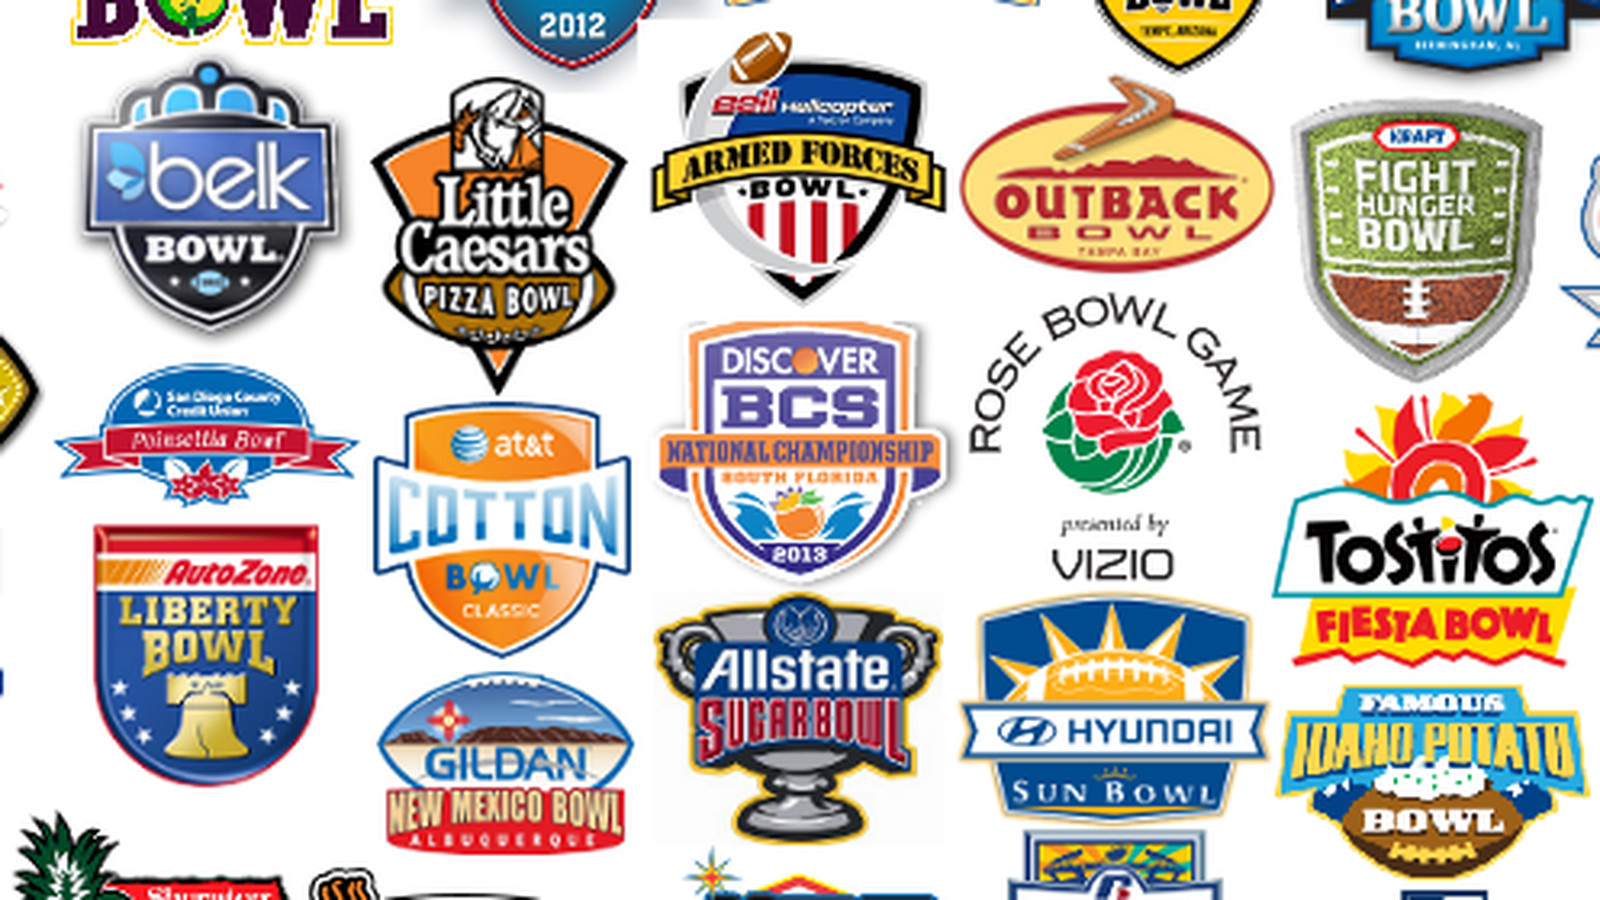 espn college football bowl projections 2012 College football playoff & bowl projections after espn acc vs american athletic boston college vs south college football playoff, bowl projections.